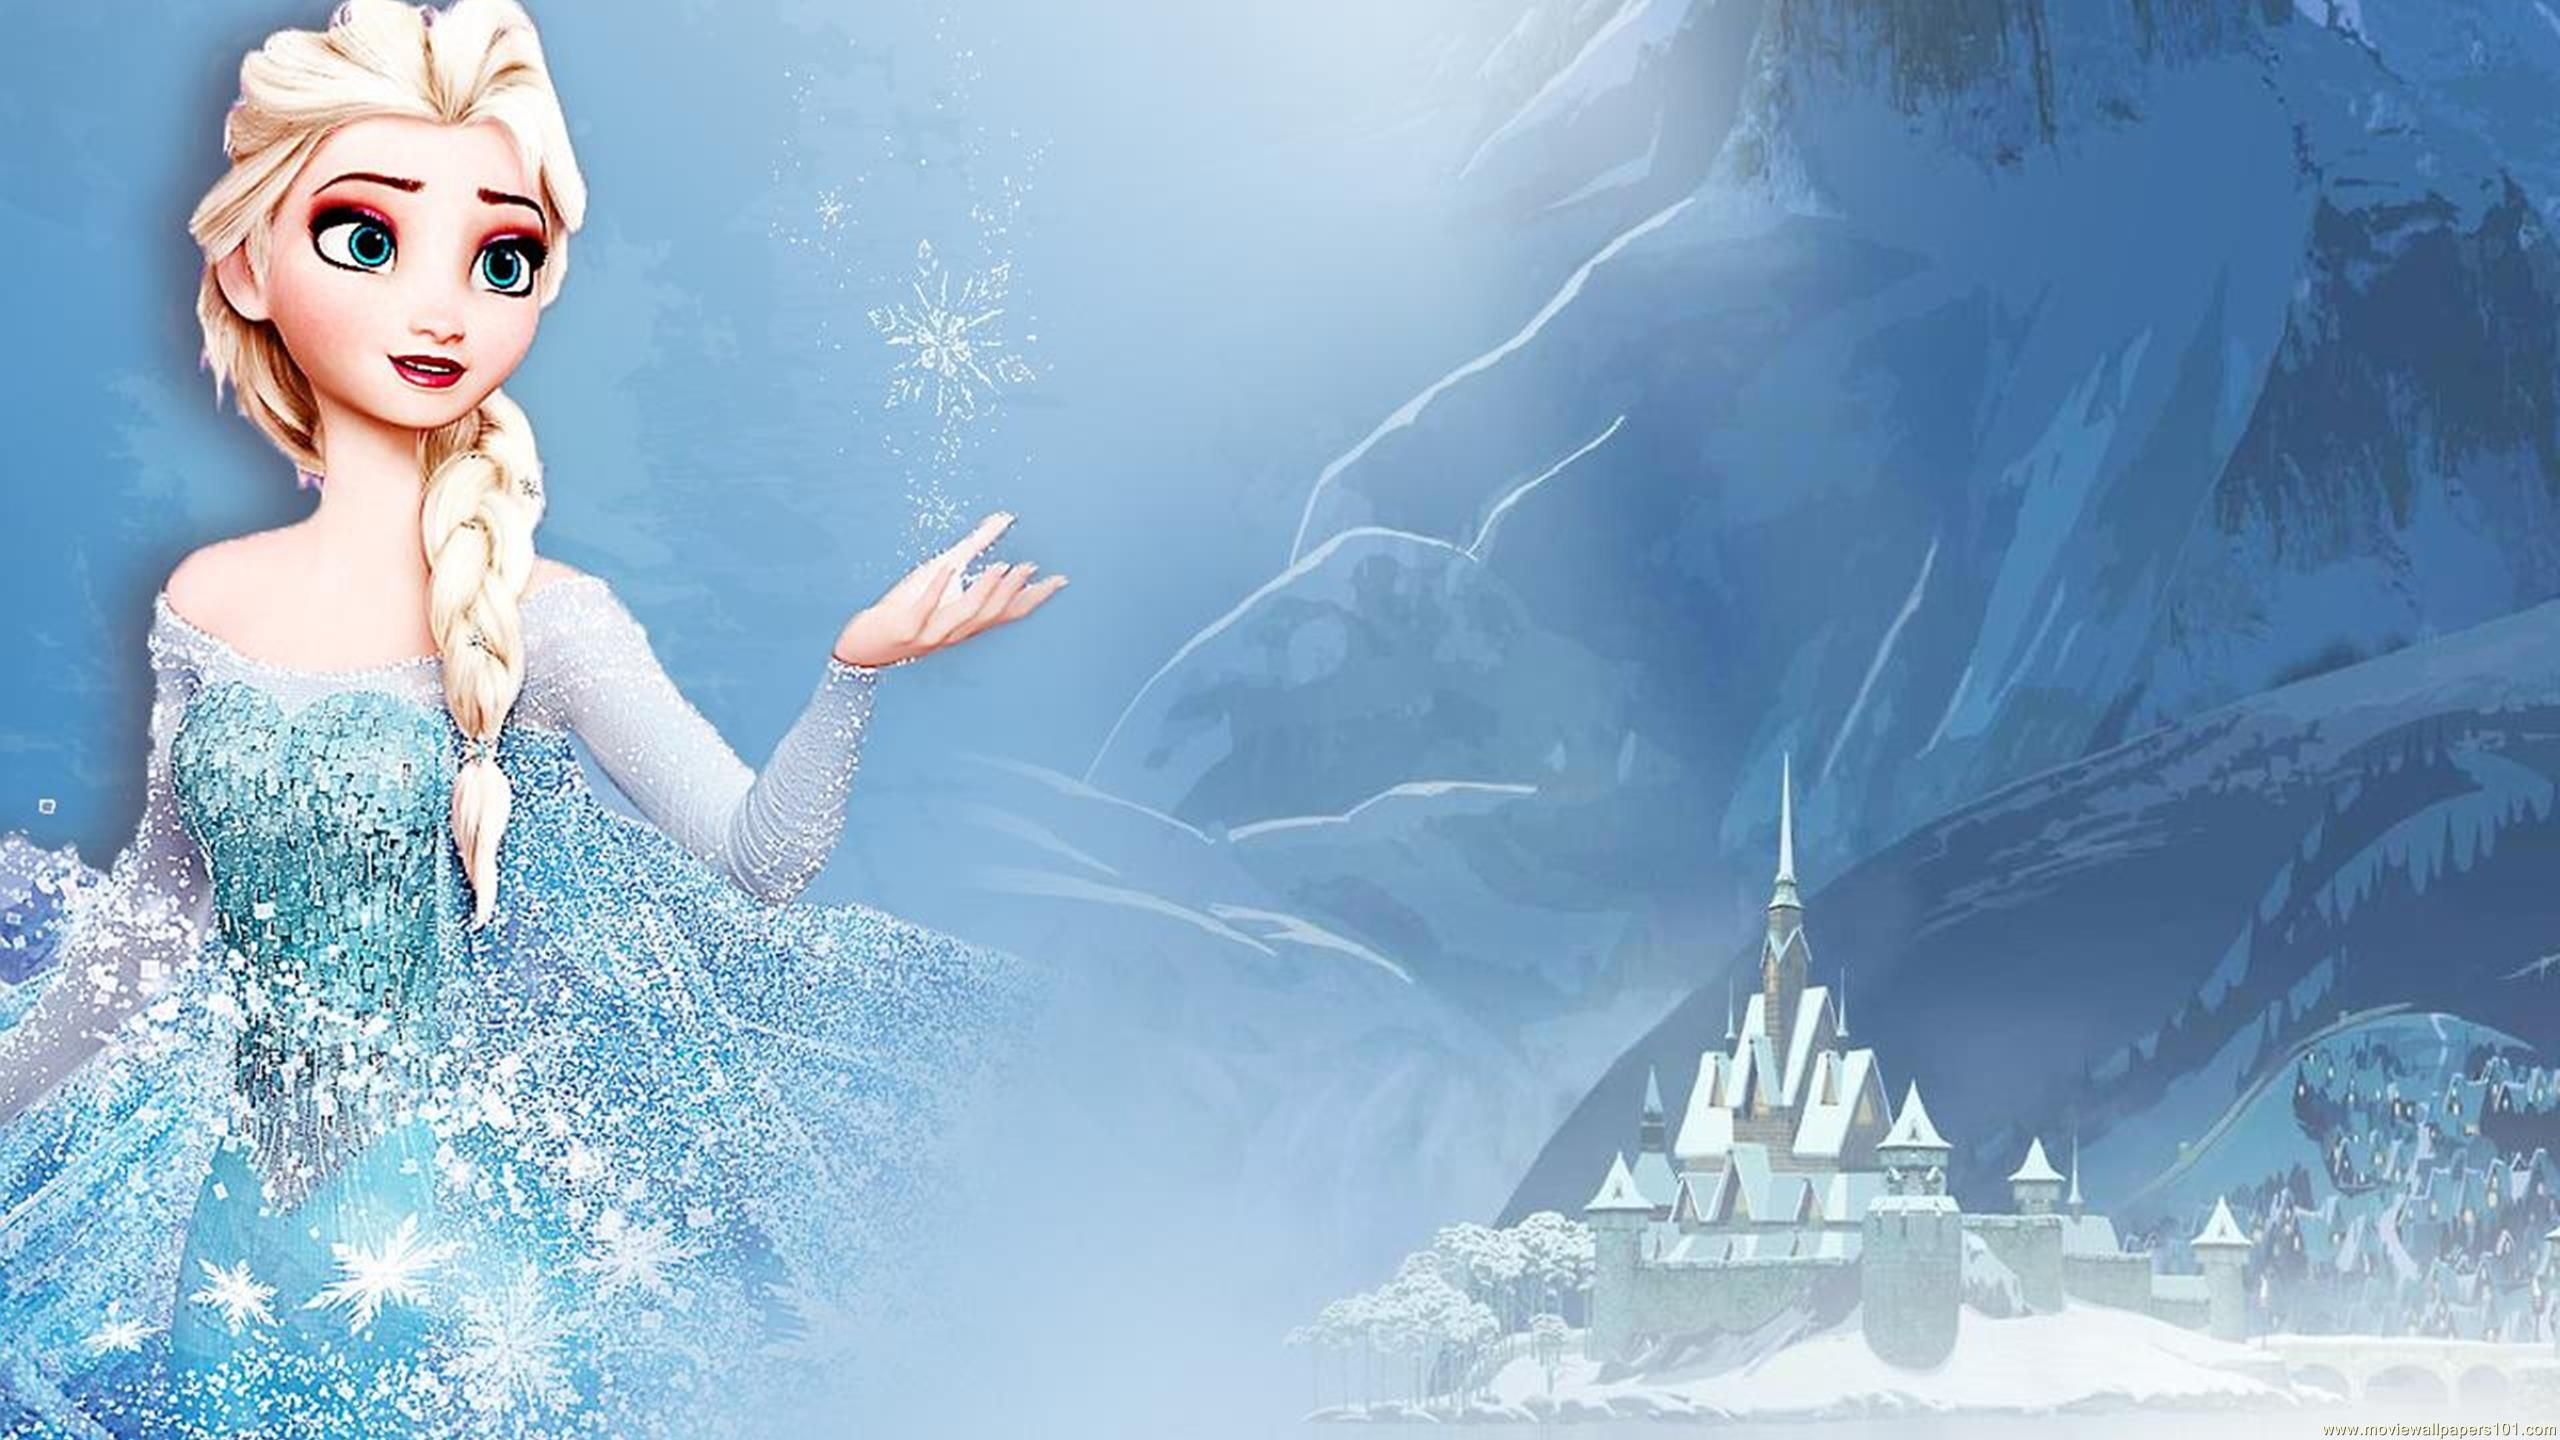 frozen elsa wallpapers - free download latest frozen elsa wallpapers